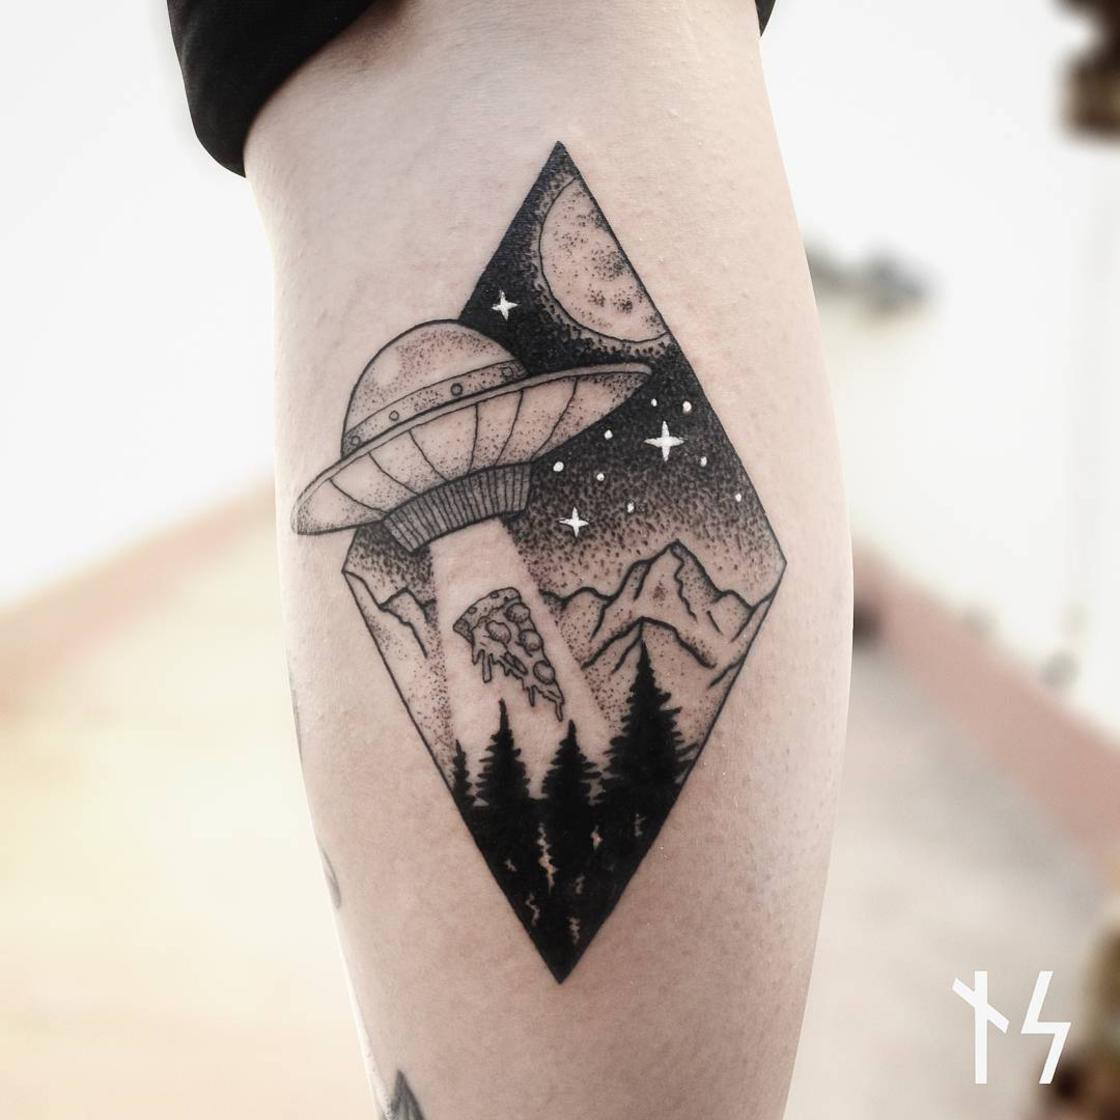 Looking for the stars – The cosmic tattoos of Nik Square